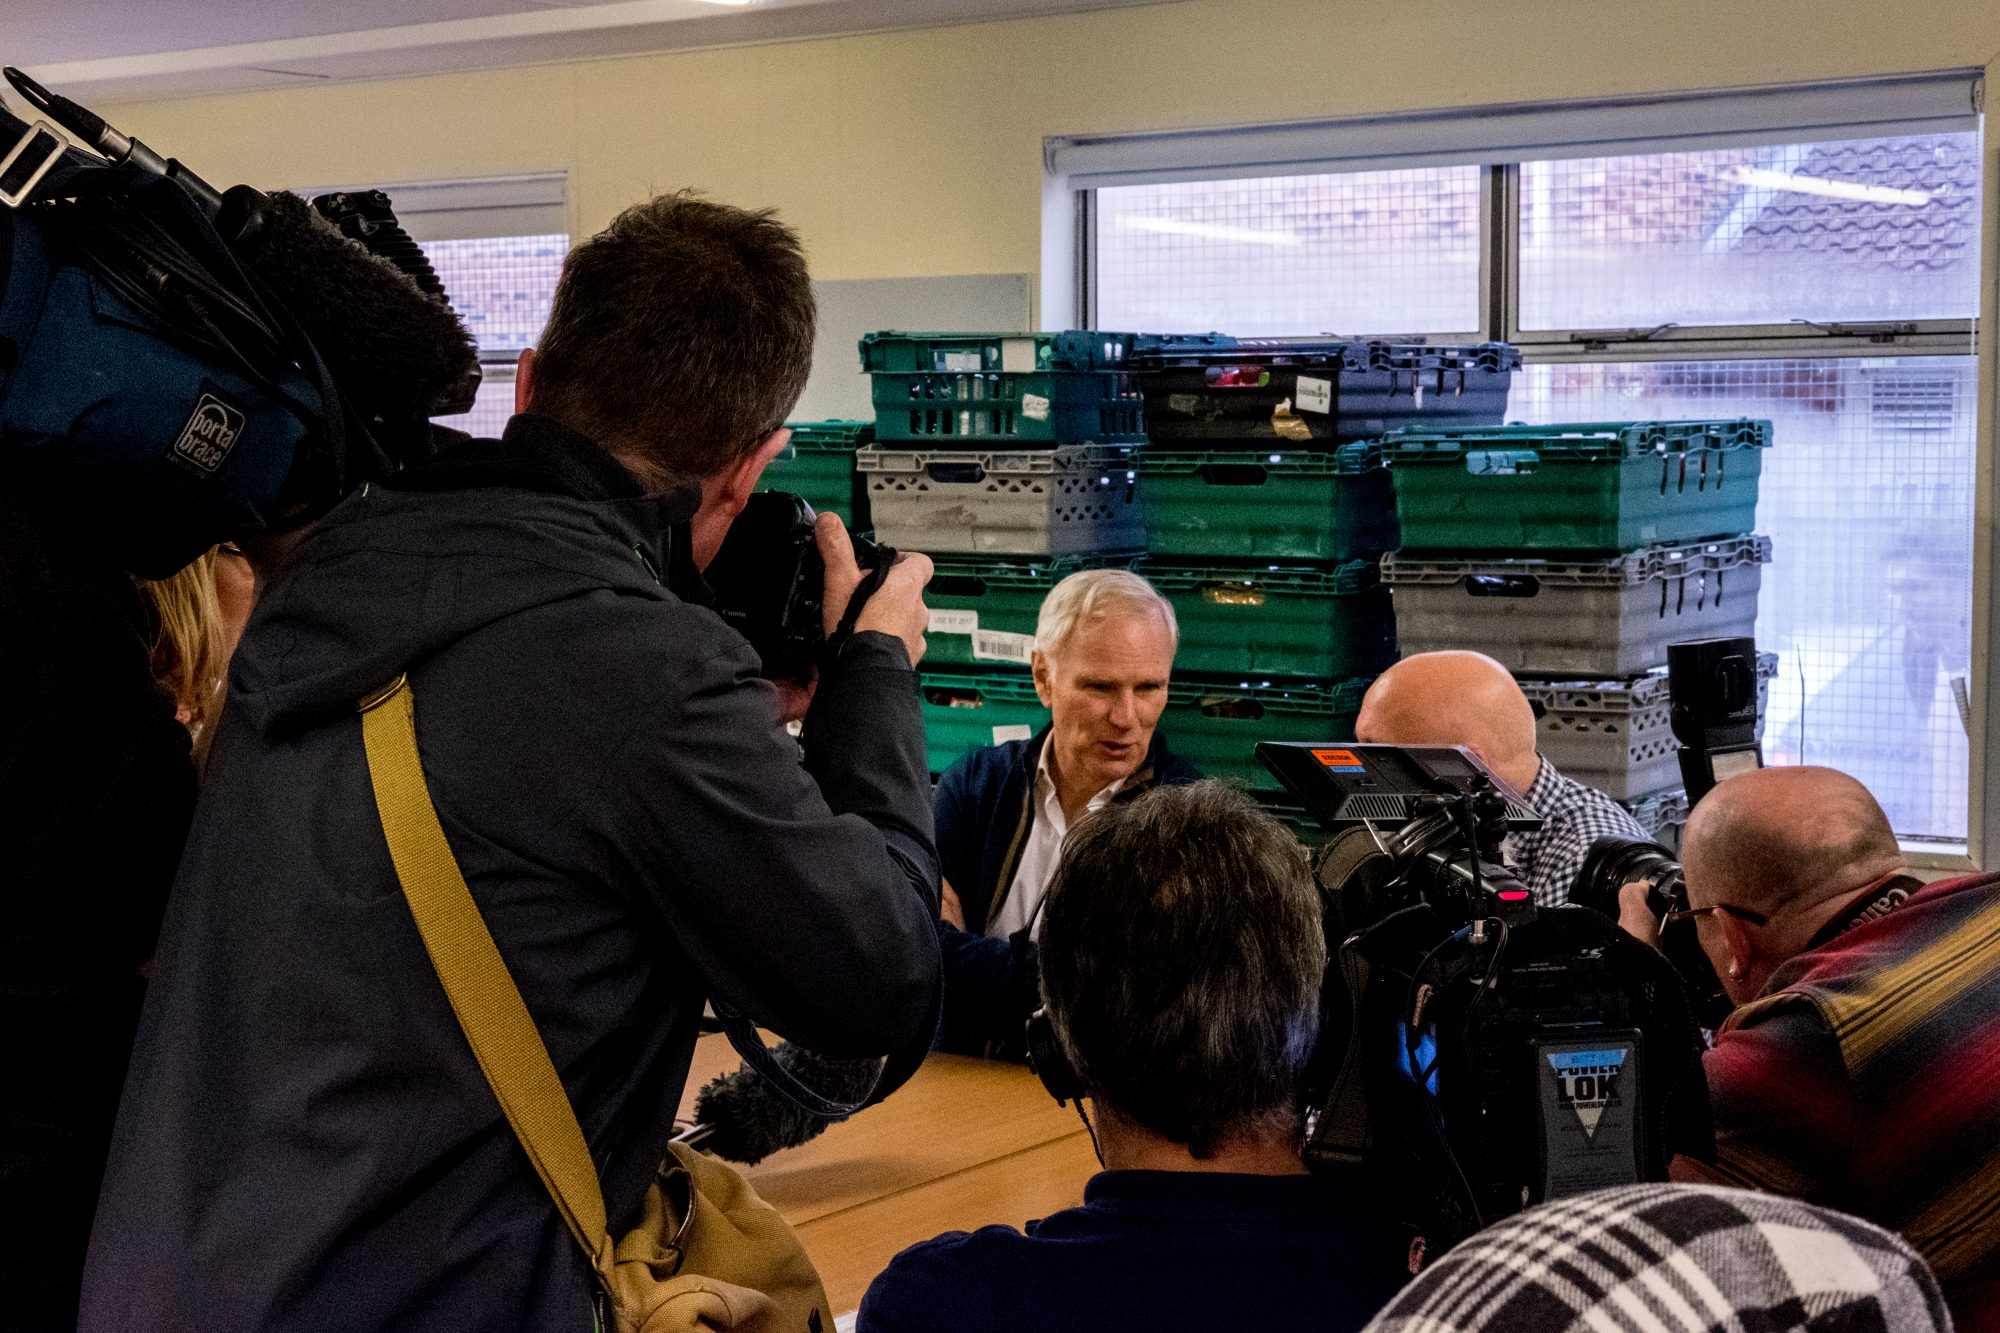 the-special-rapporteur-visits-a-foodbank-in-newcastle-c-bassam-khawaja-2018